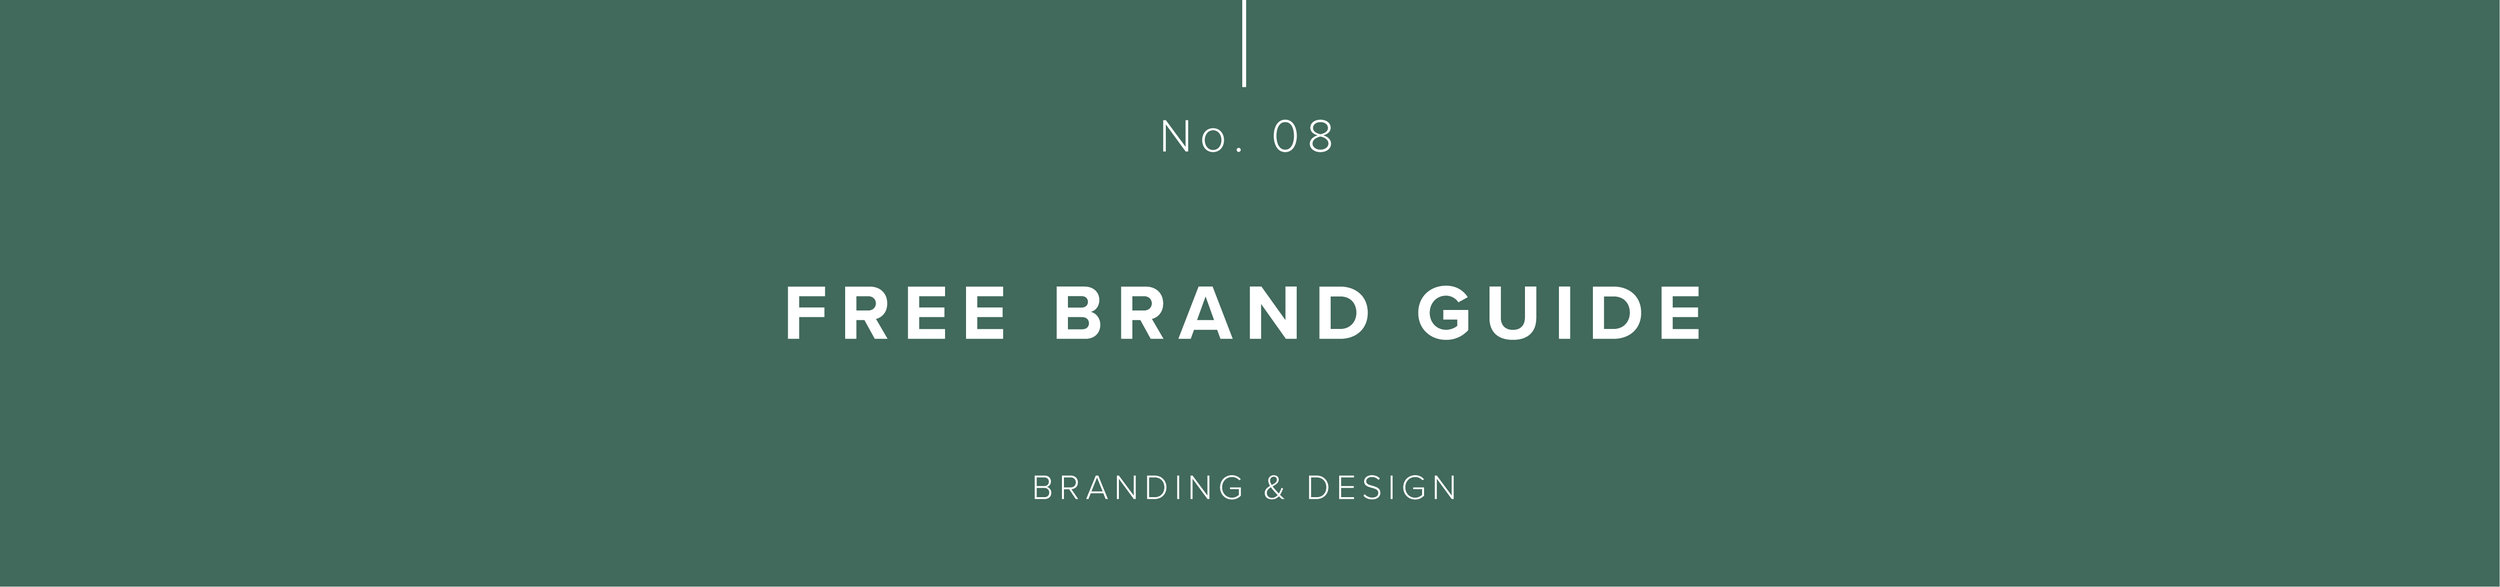 Free-brand-evaluation-guide-wide.jpg